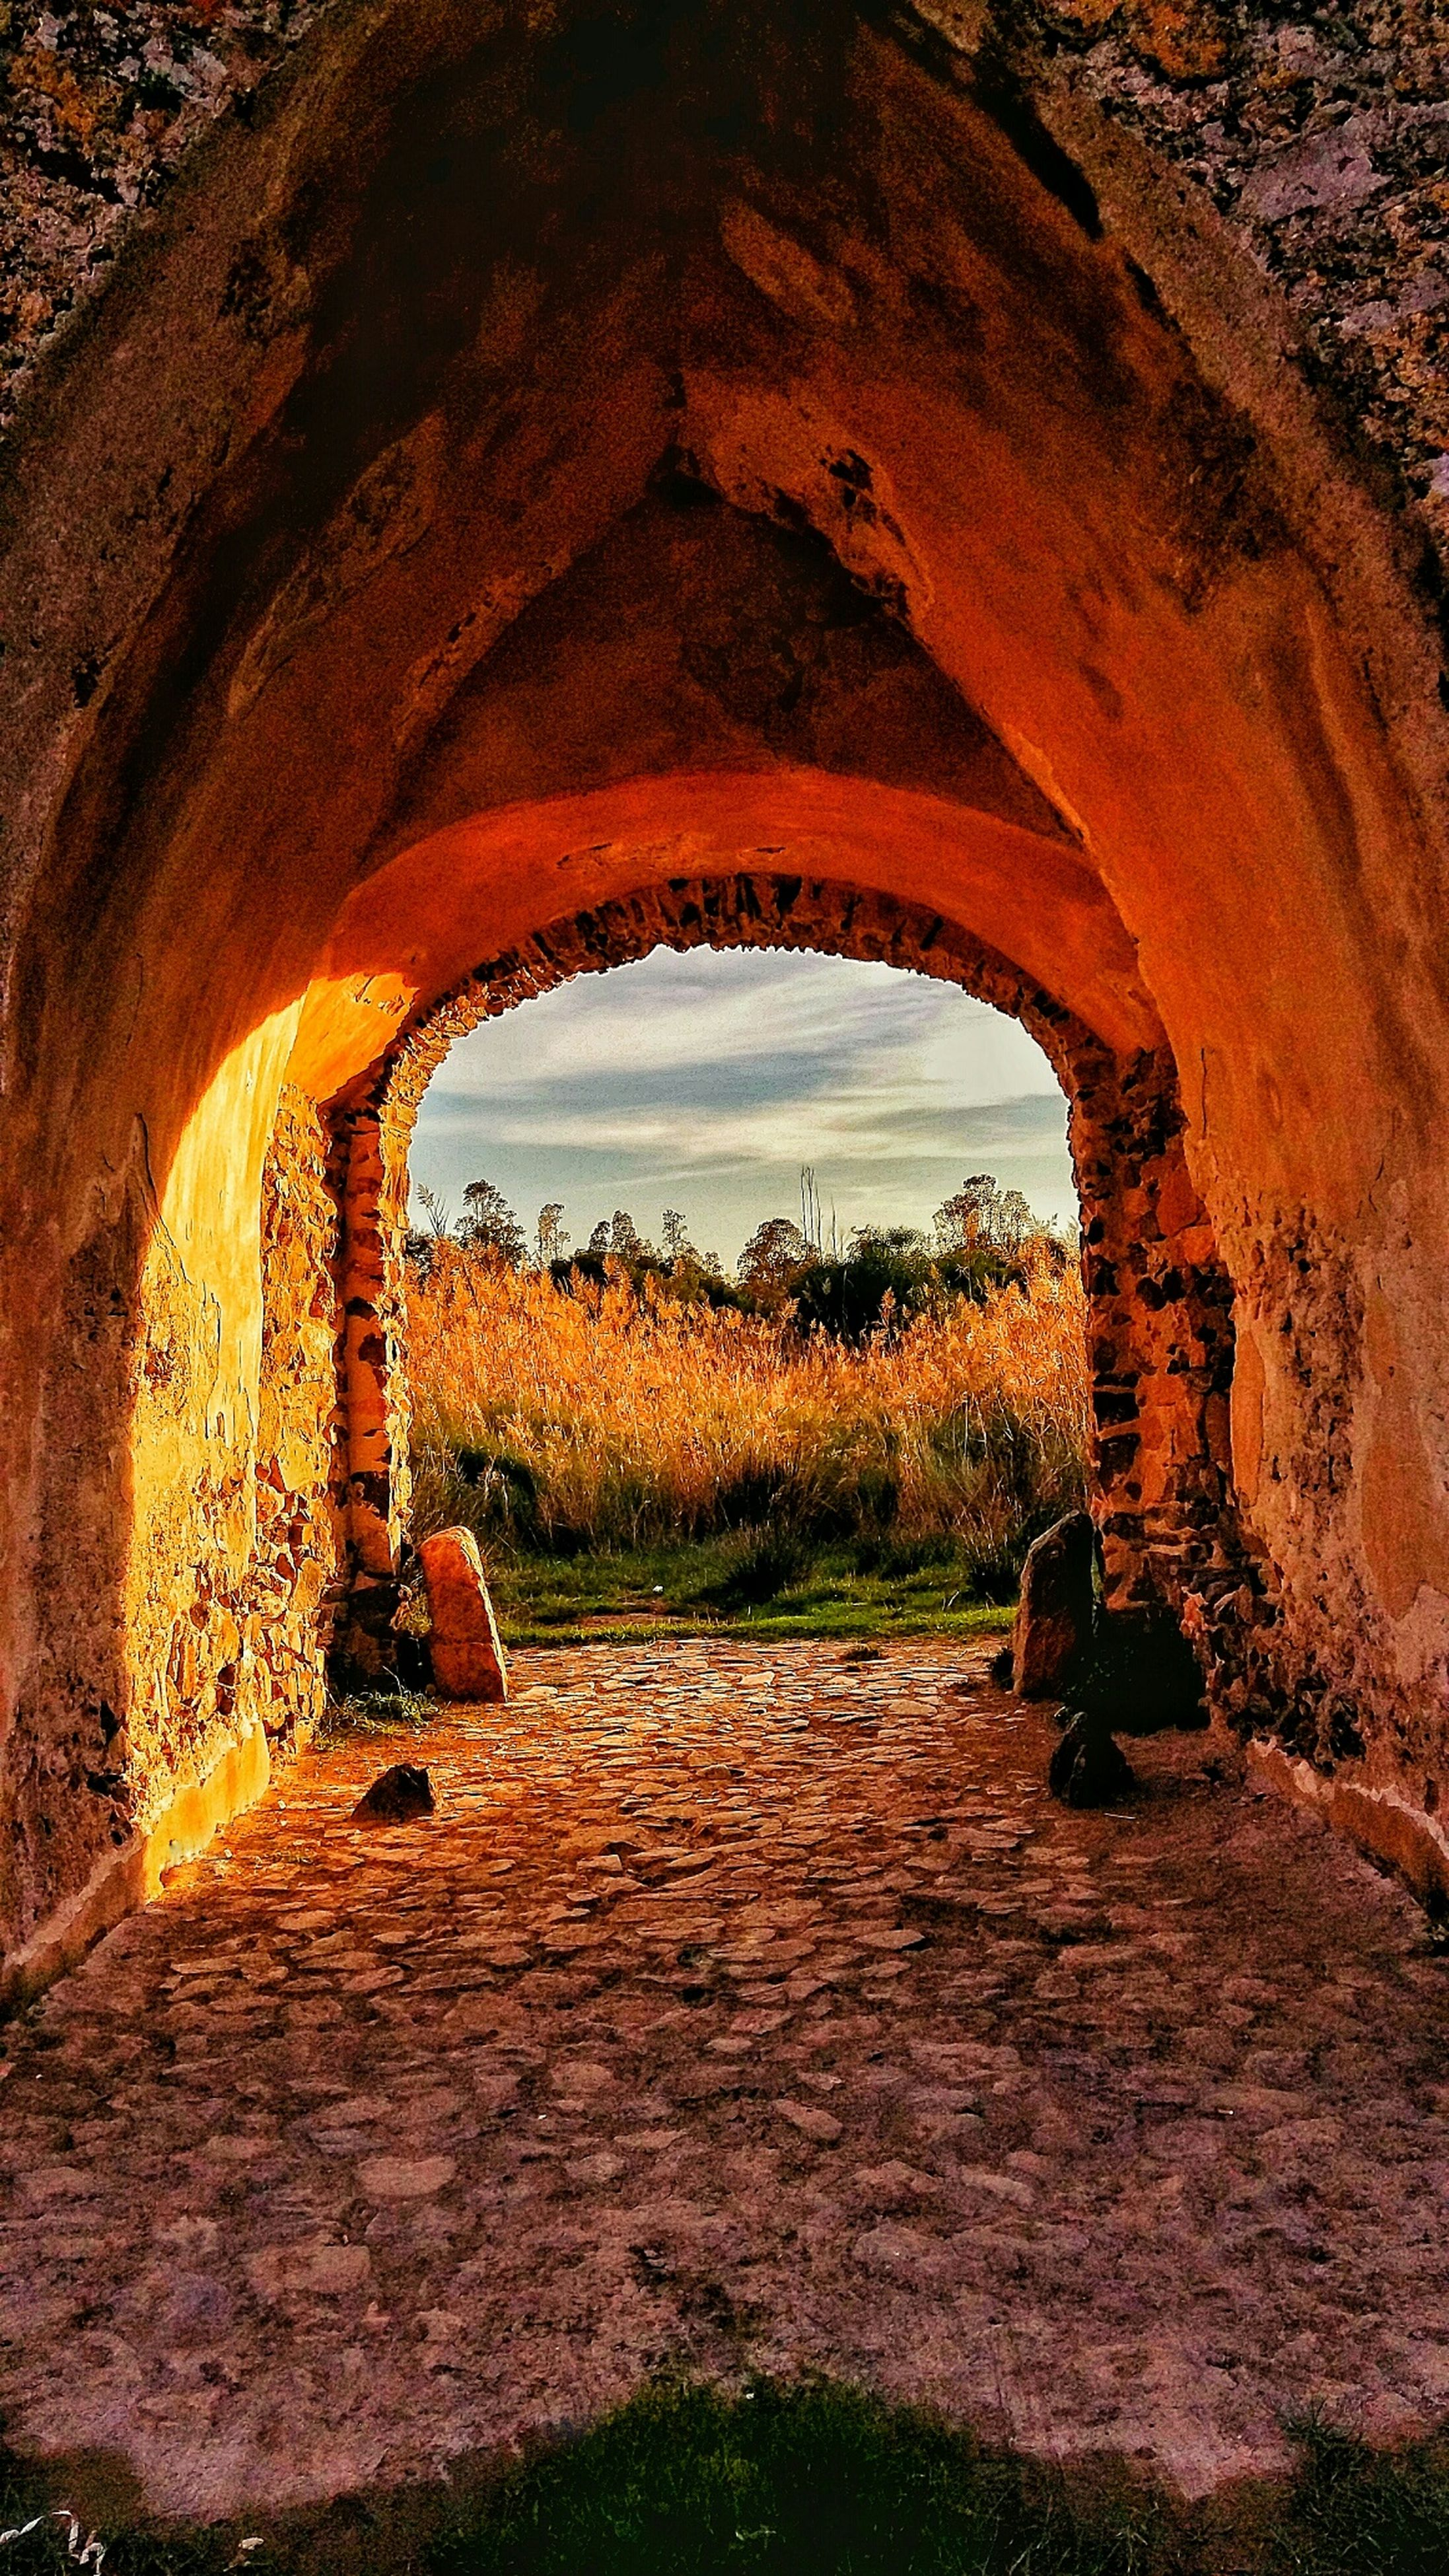 arch, architecture, built structure, old, stone wall, archway, old ruin, history, indoors, tunnel, abandoned, sky, wall - building feature, weathered, the past, day, tree, ruined, deterioration, damaged